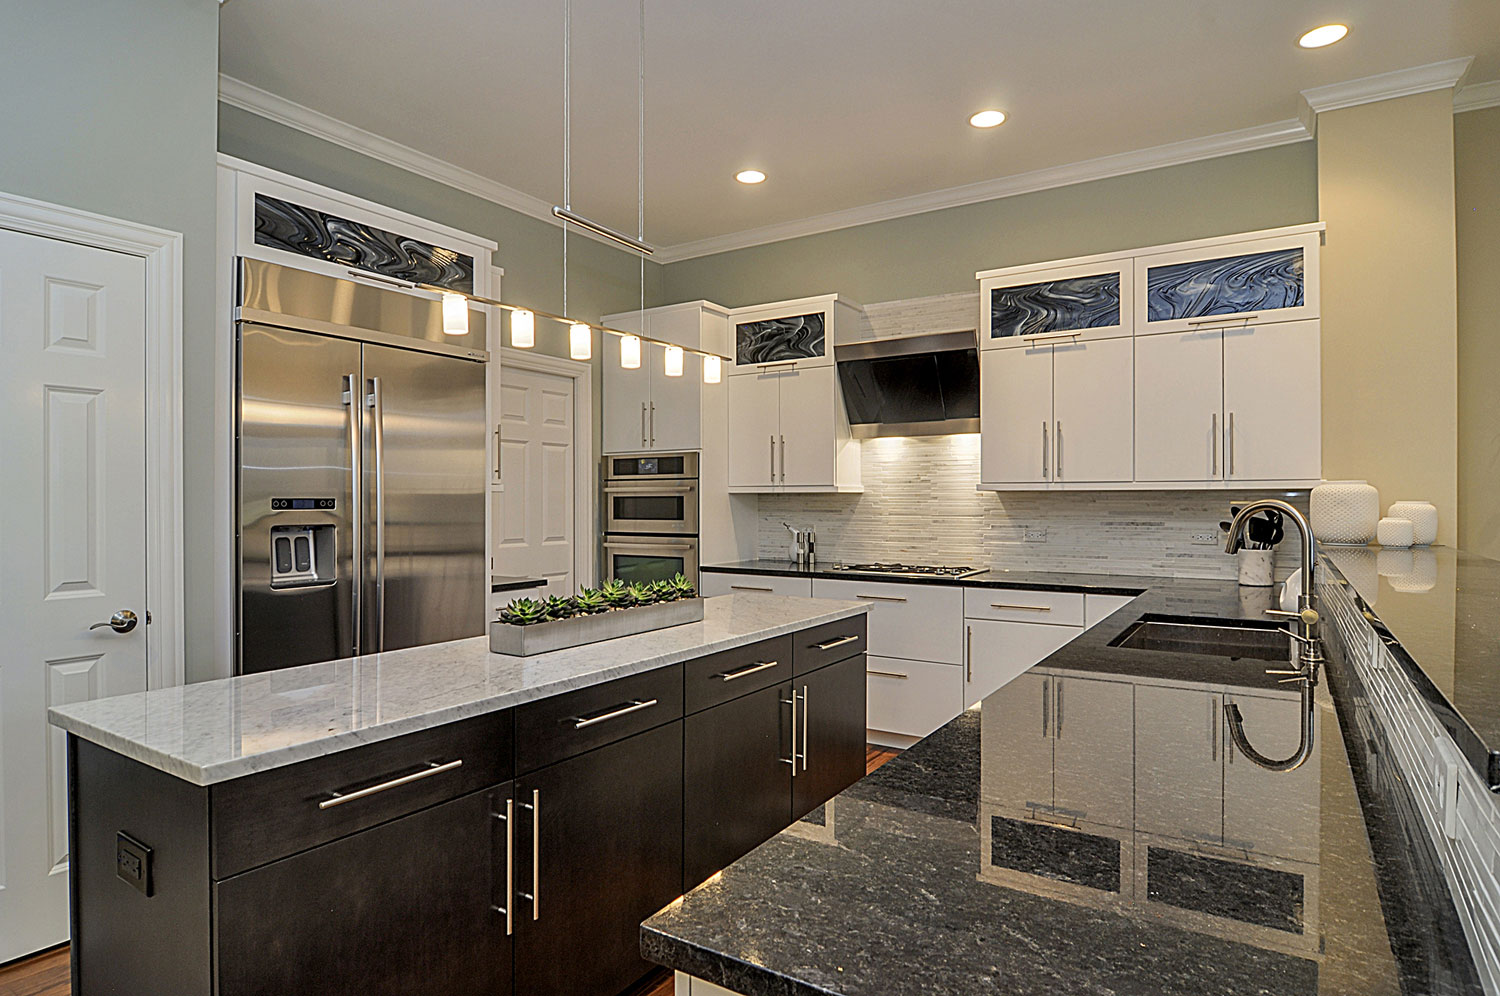 Doug natalie 39 s kitchen remodel pictures home for House renovation services